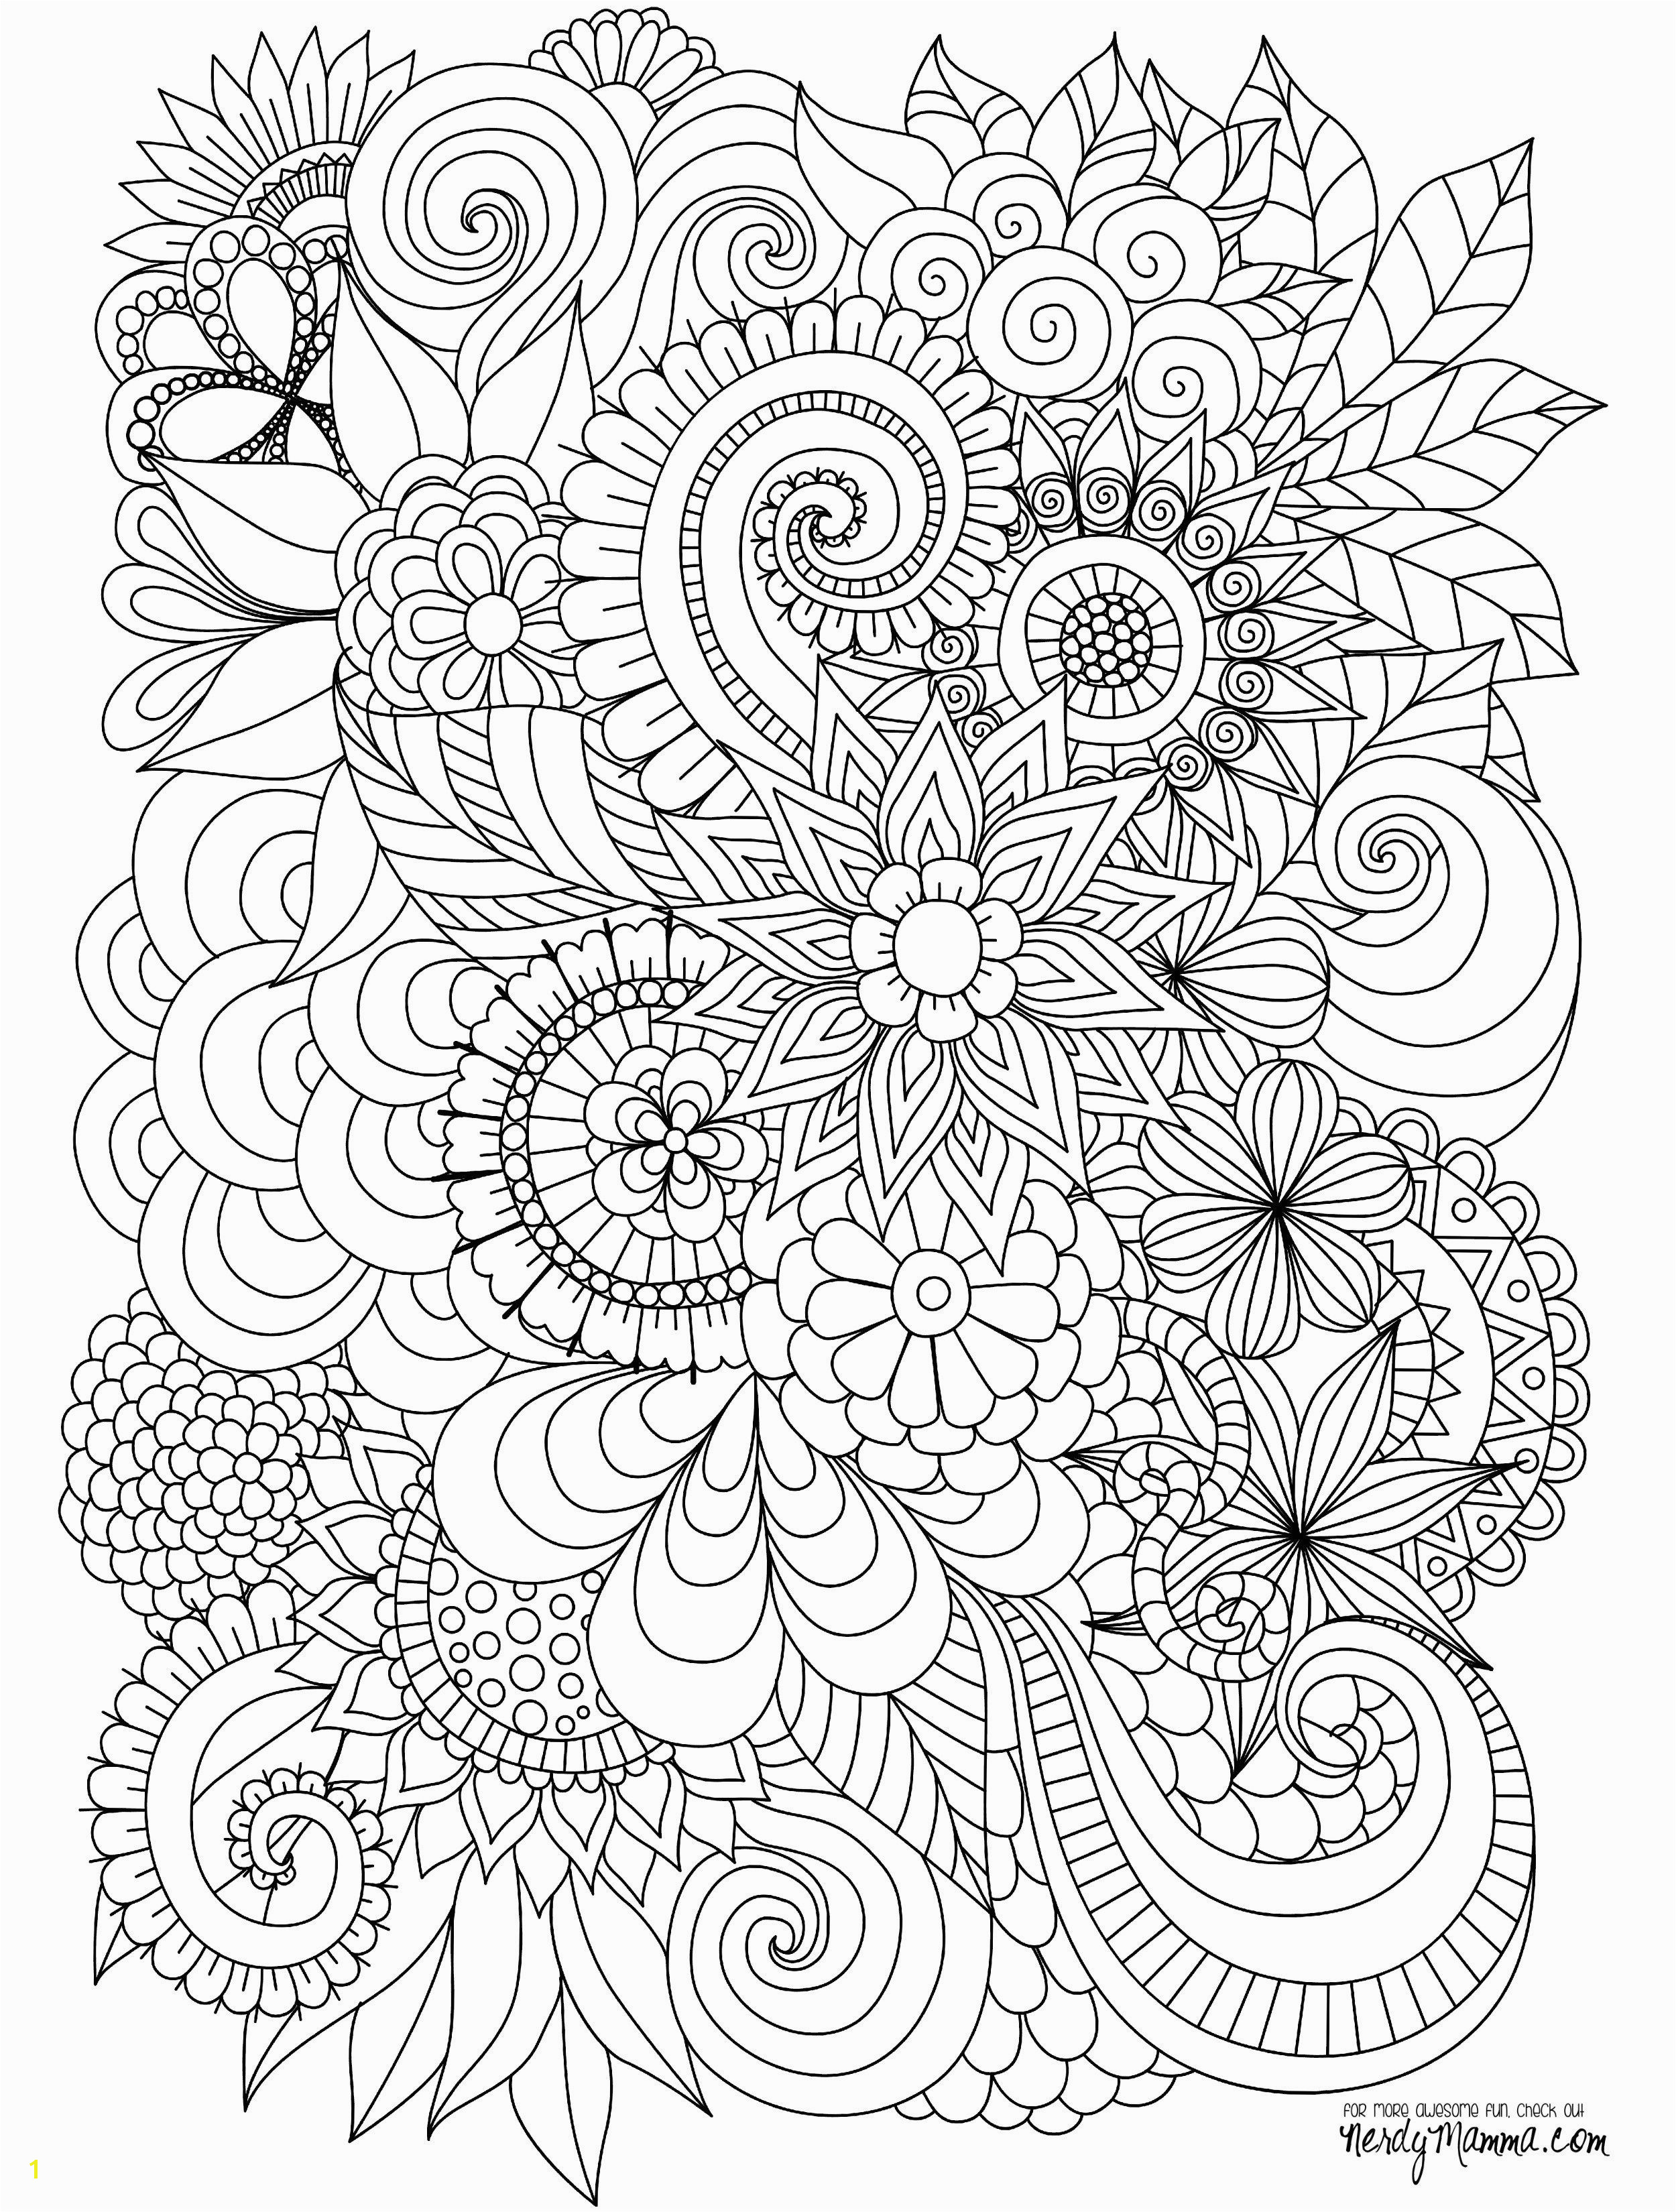 flowers abstract coloring pages colouring adult detailed advancedflowers abstract coloring pages colouring adult detailed advanced printable